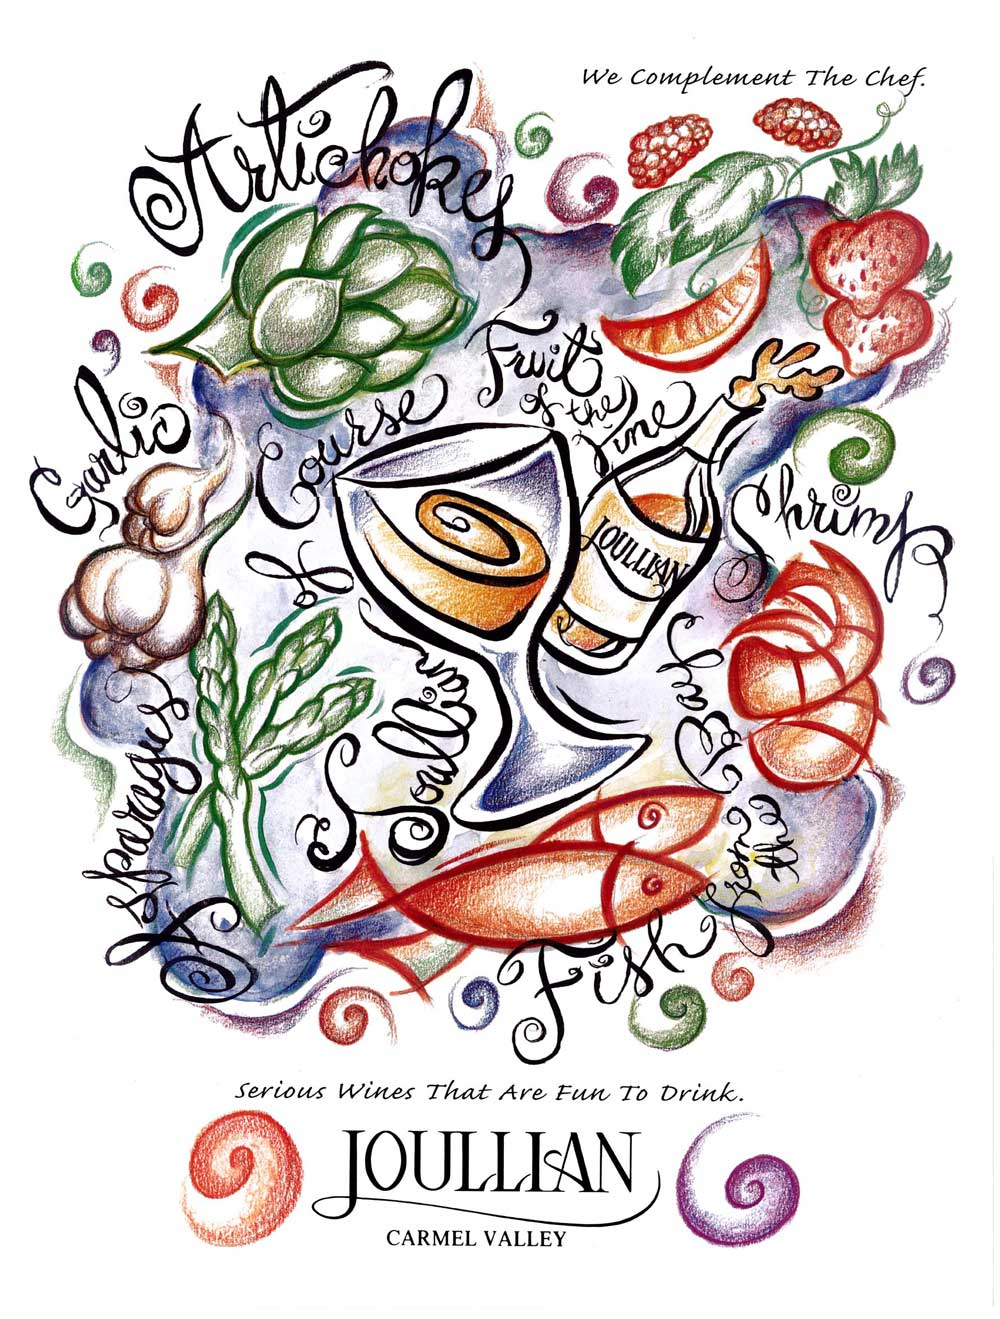 Joullian Poster & Ad for Dining Magazine  Client:  Joullian Vineyards via Jordan Associates  Medium: Mixed Media